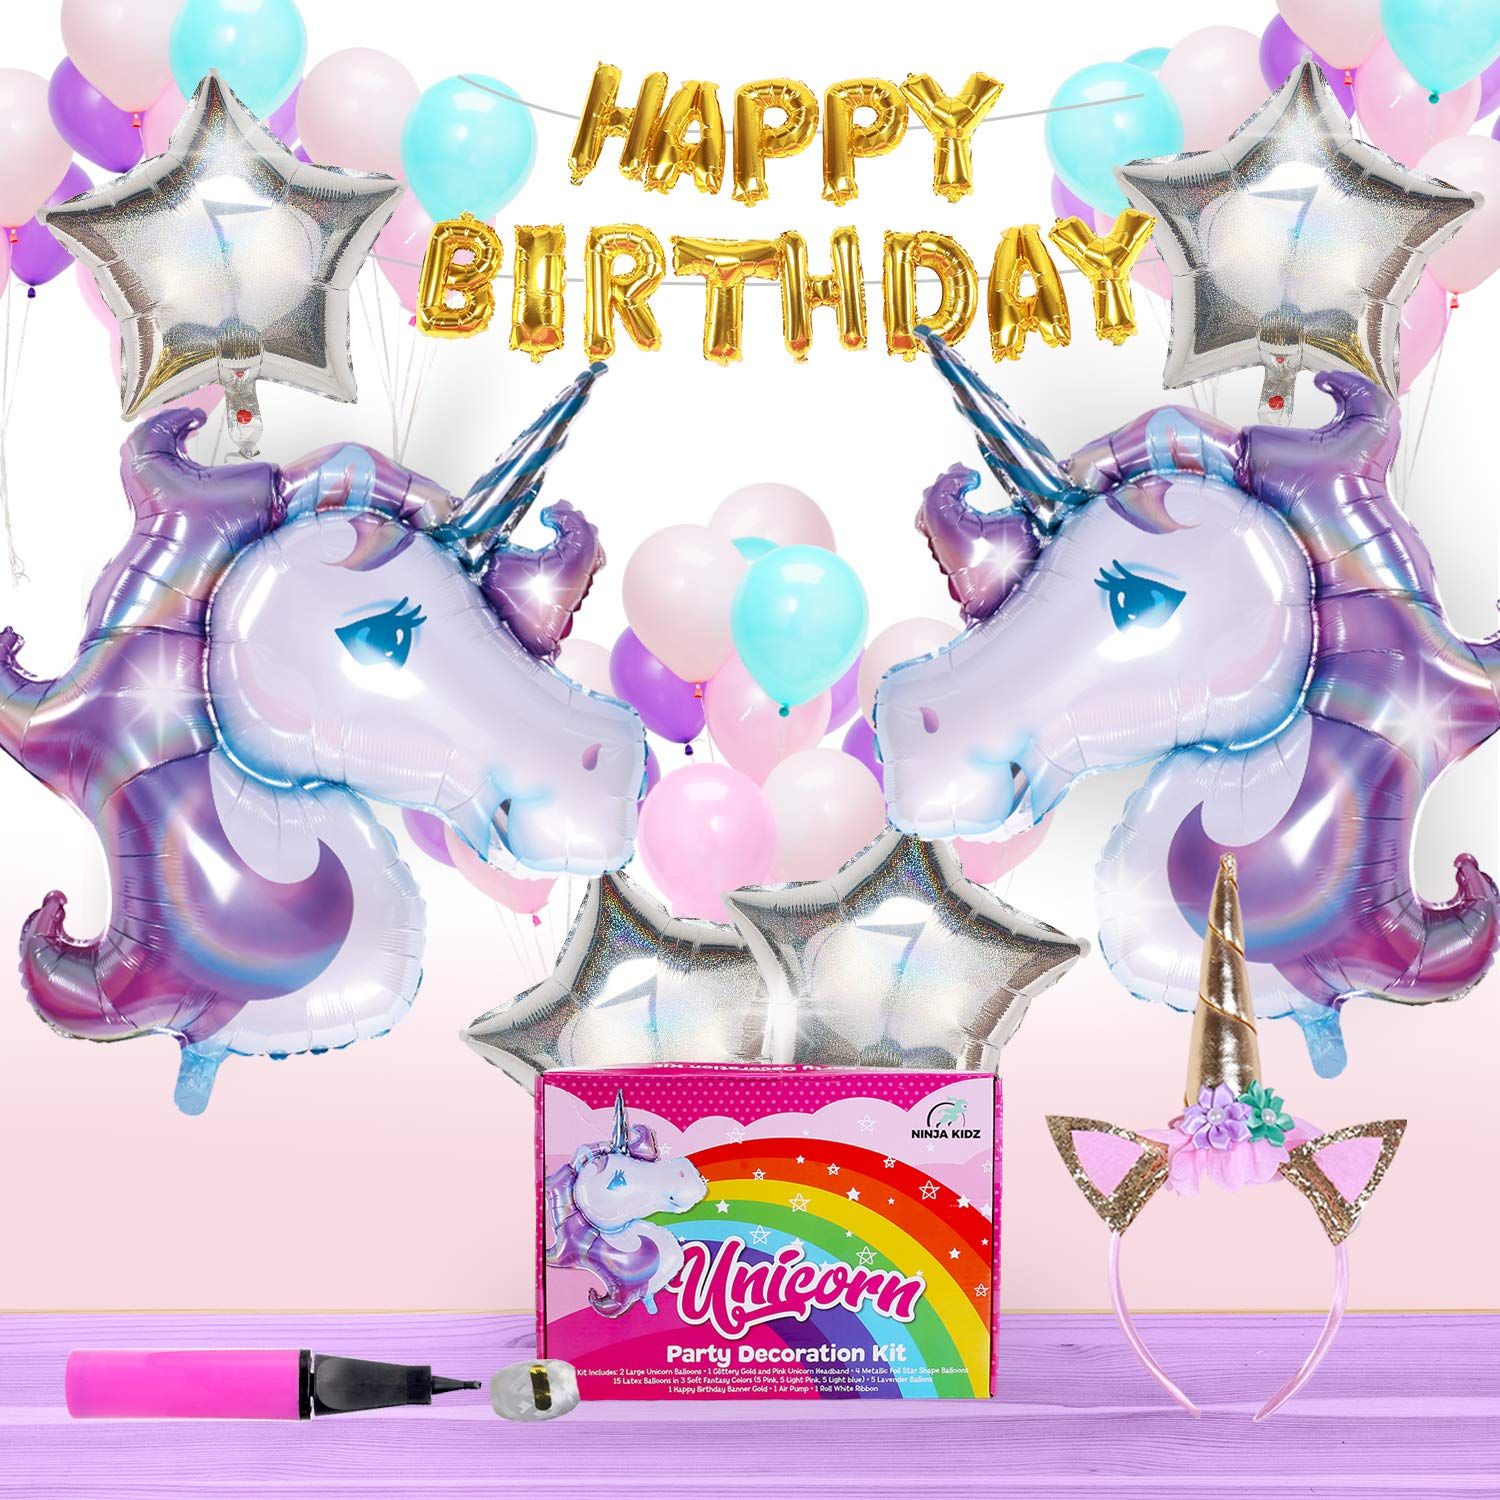 Unicorn Party Supplies | Birthday Theme Party Decorations | Party Favors with 26 Colorful Latex, Mylar Balloons, Gold Happy Birthday Banner, Unicorn Horn Glitter Headband, Air Pump & String in Box